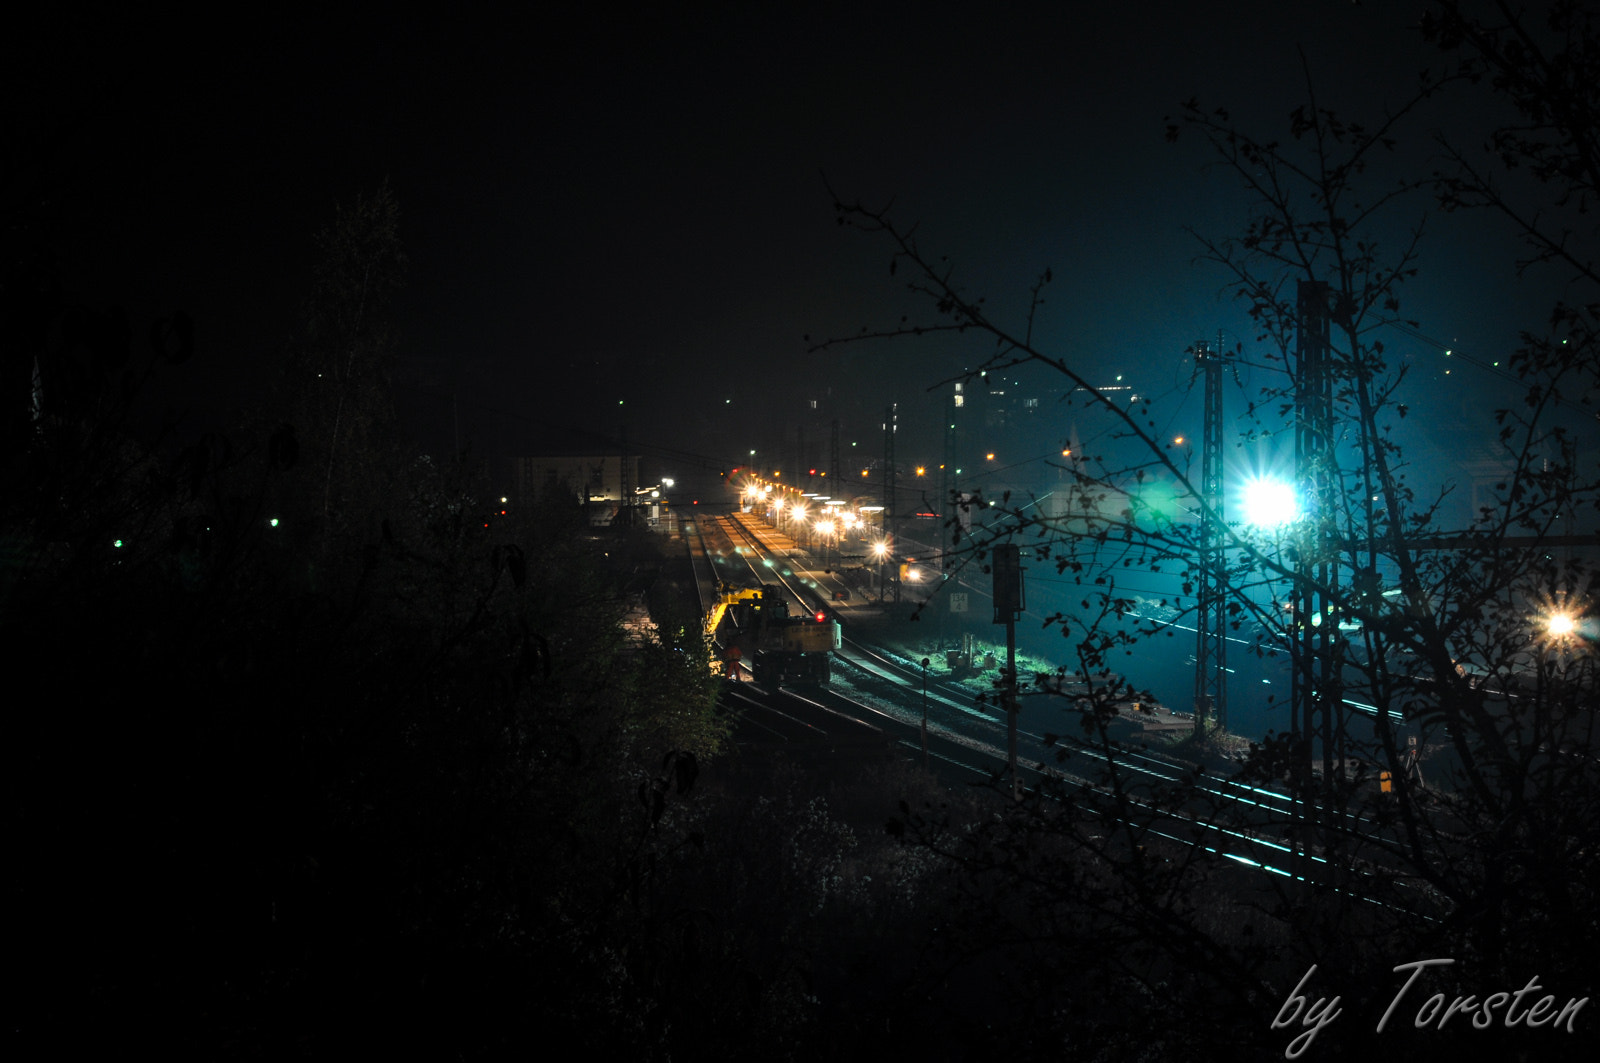 Photograph Station construction site by night by Torsten Trunz on 500px